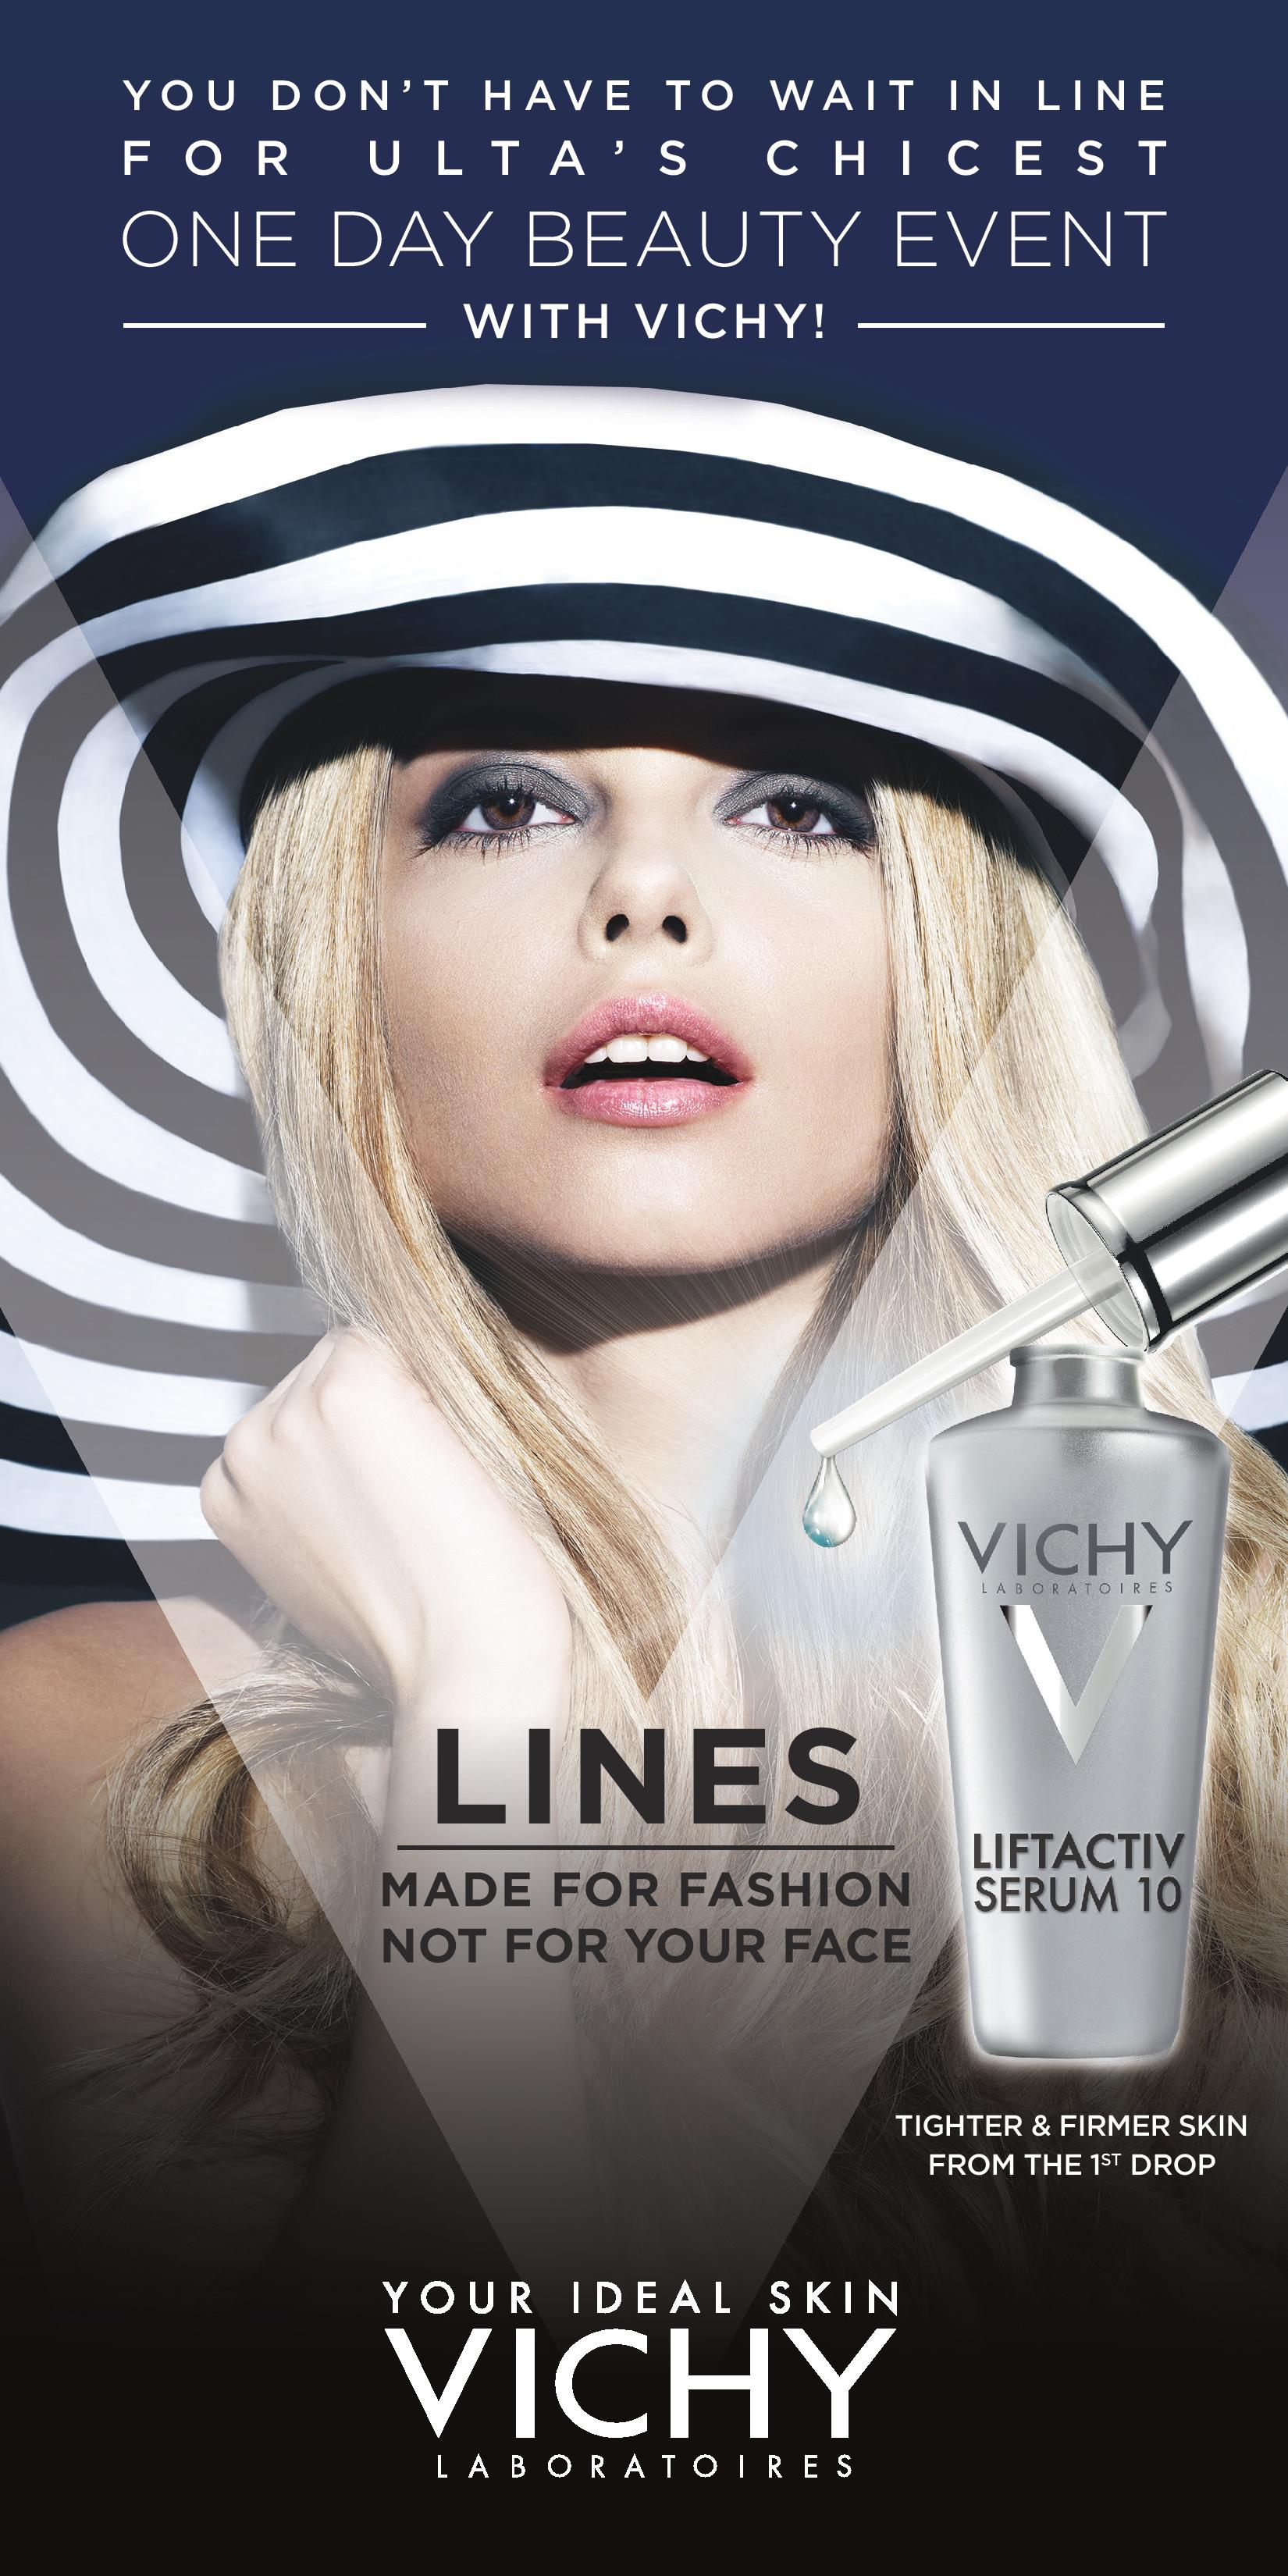 Vichy at Ulta: Saturday